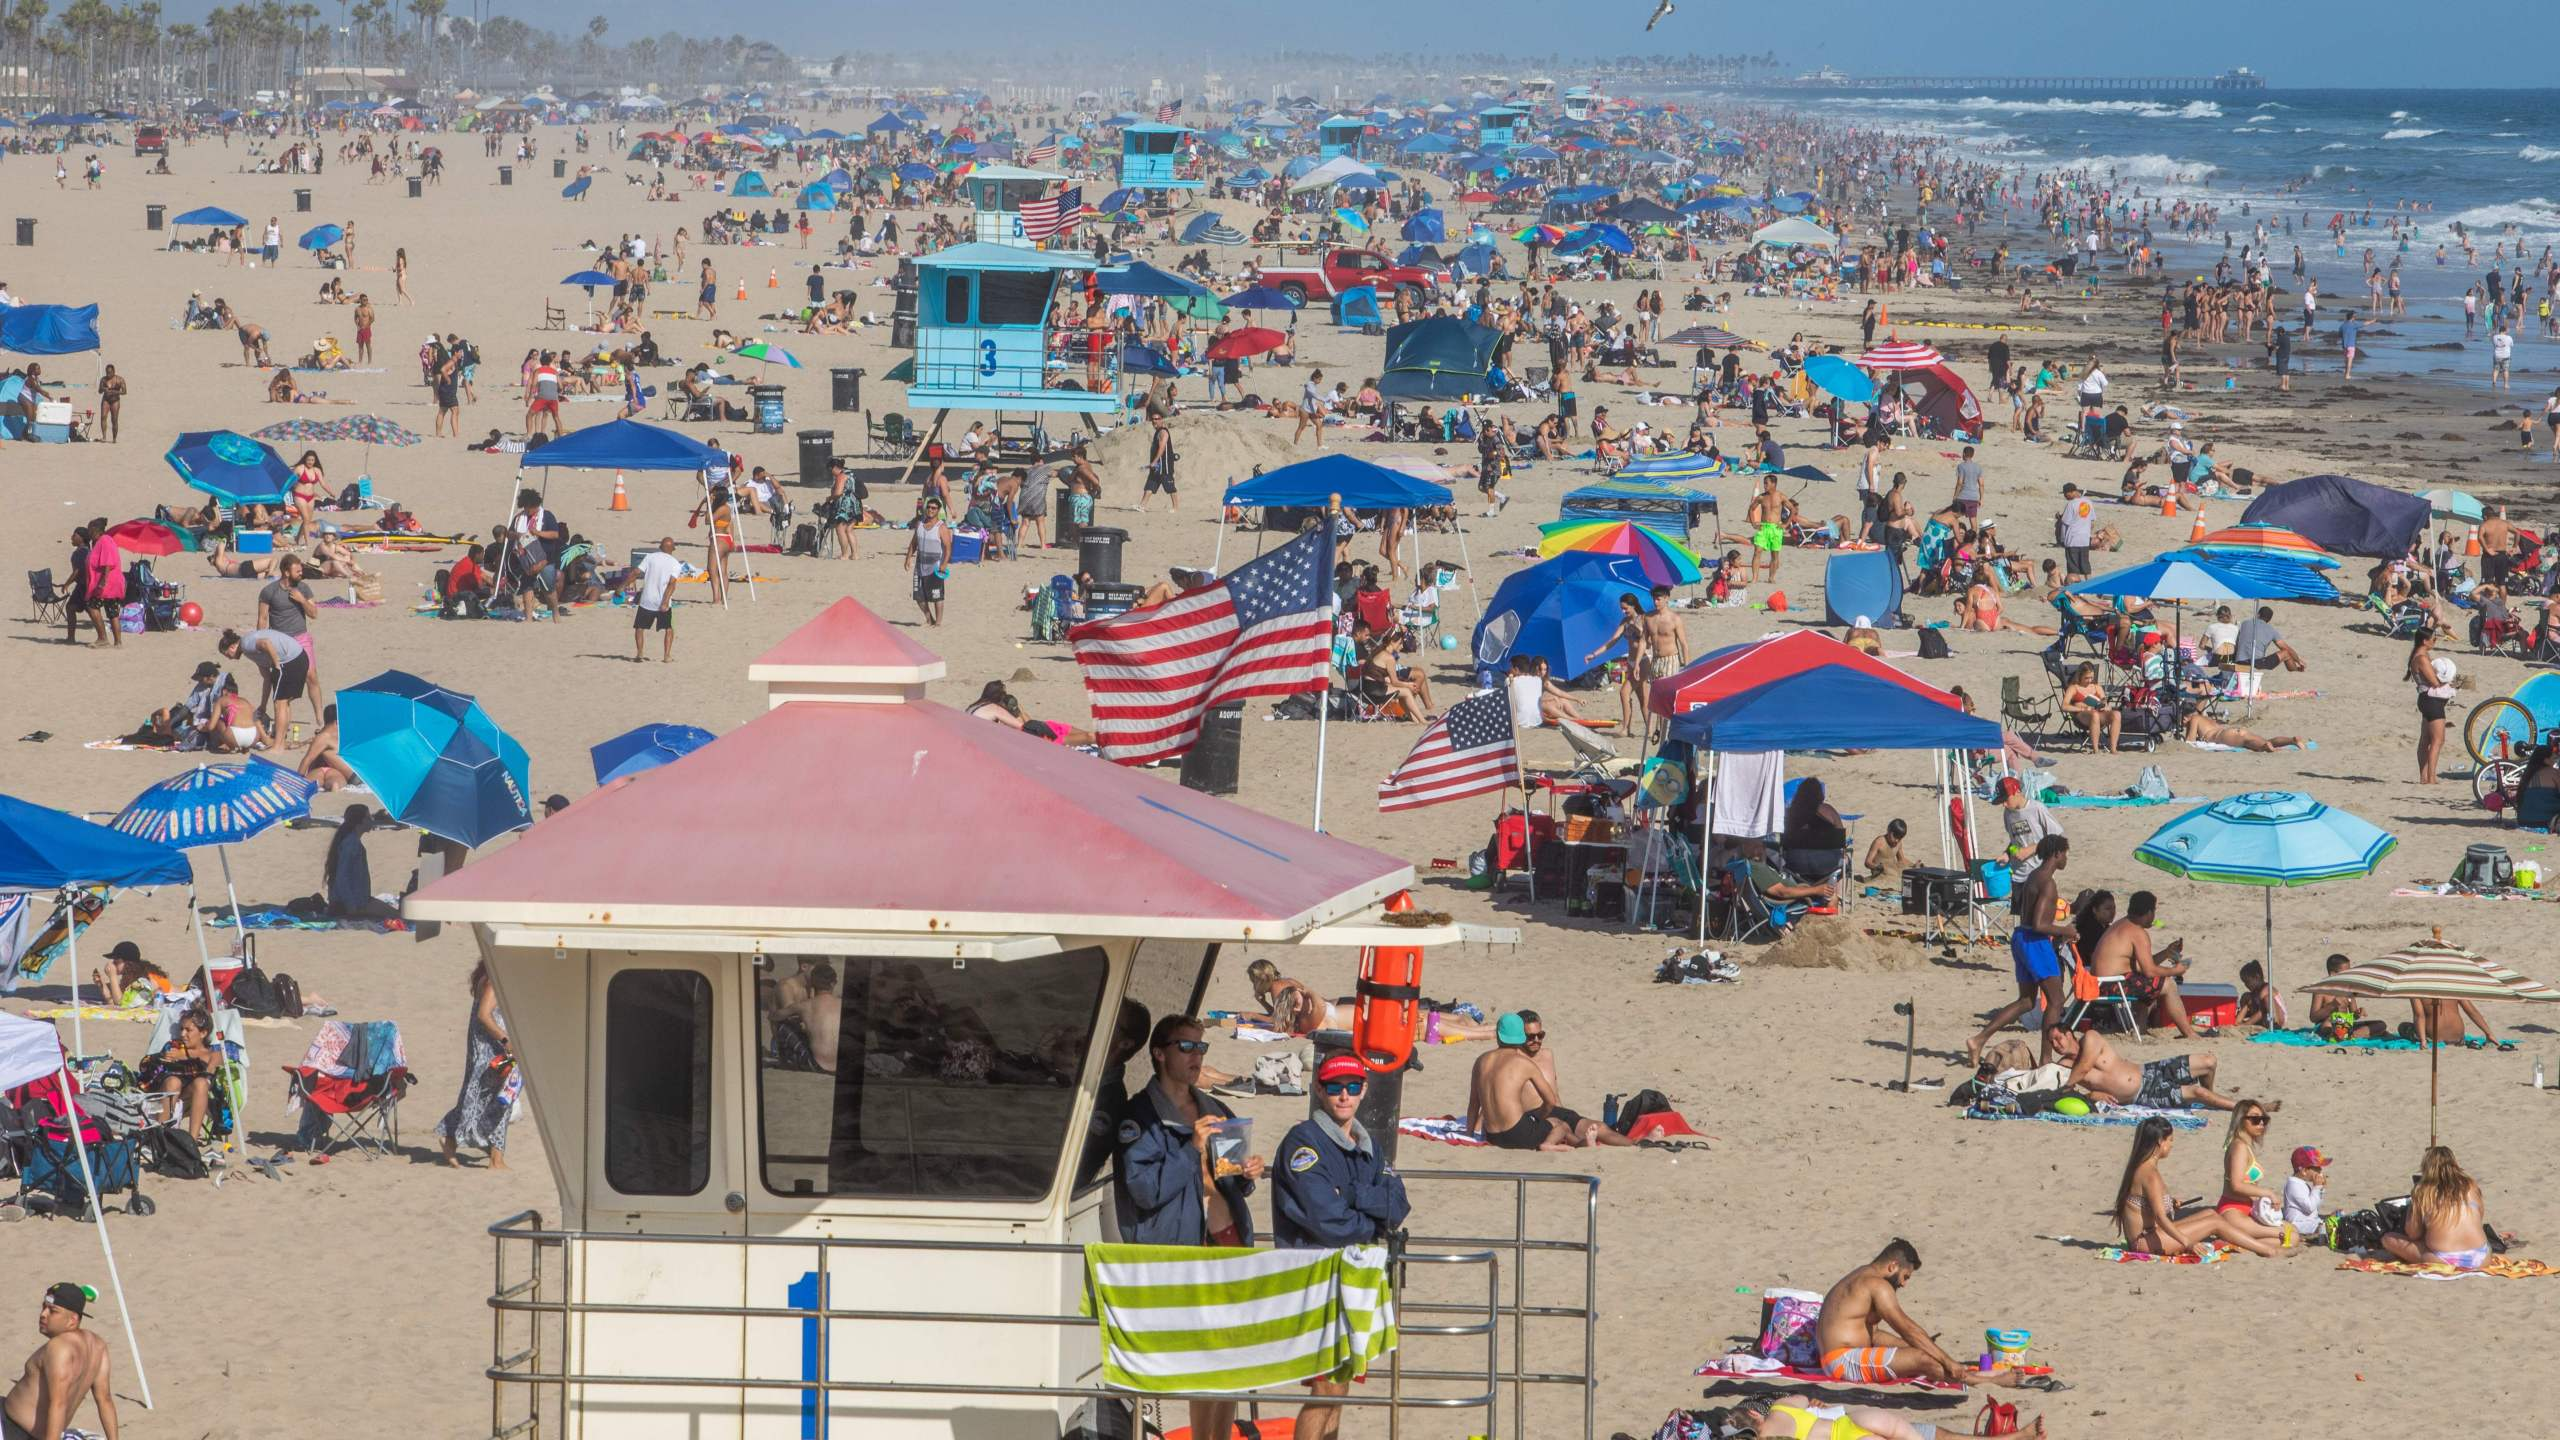 People enjoy the beach amid the coronavirus pandemic in Huntington Beach, on June 14, 2020. (Apu GOMES / AFP) (Photo by APU GOMES/AFP via Getty Images)